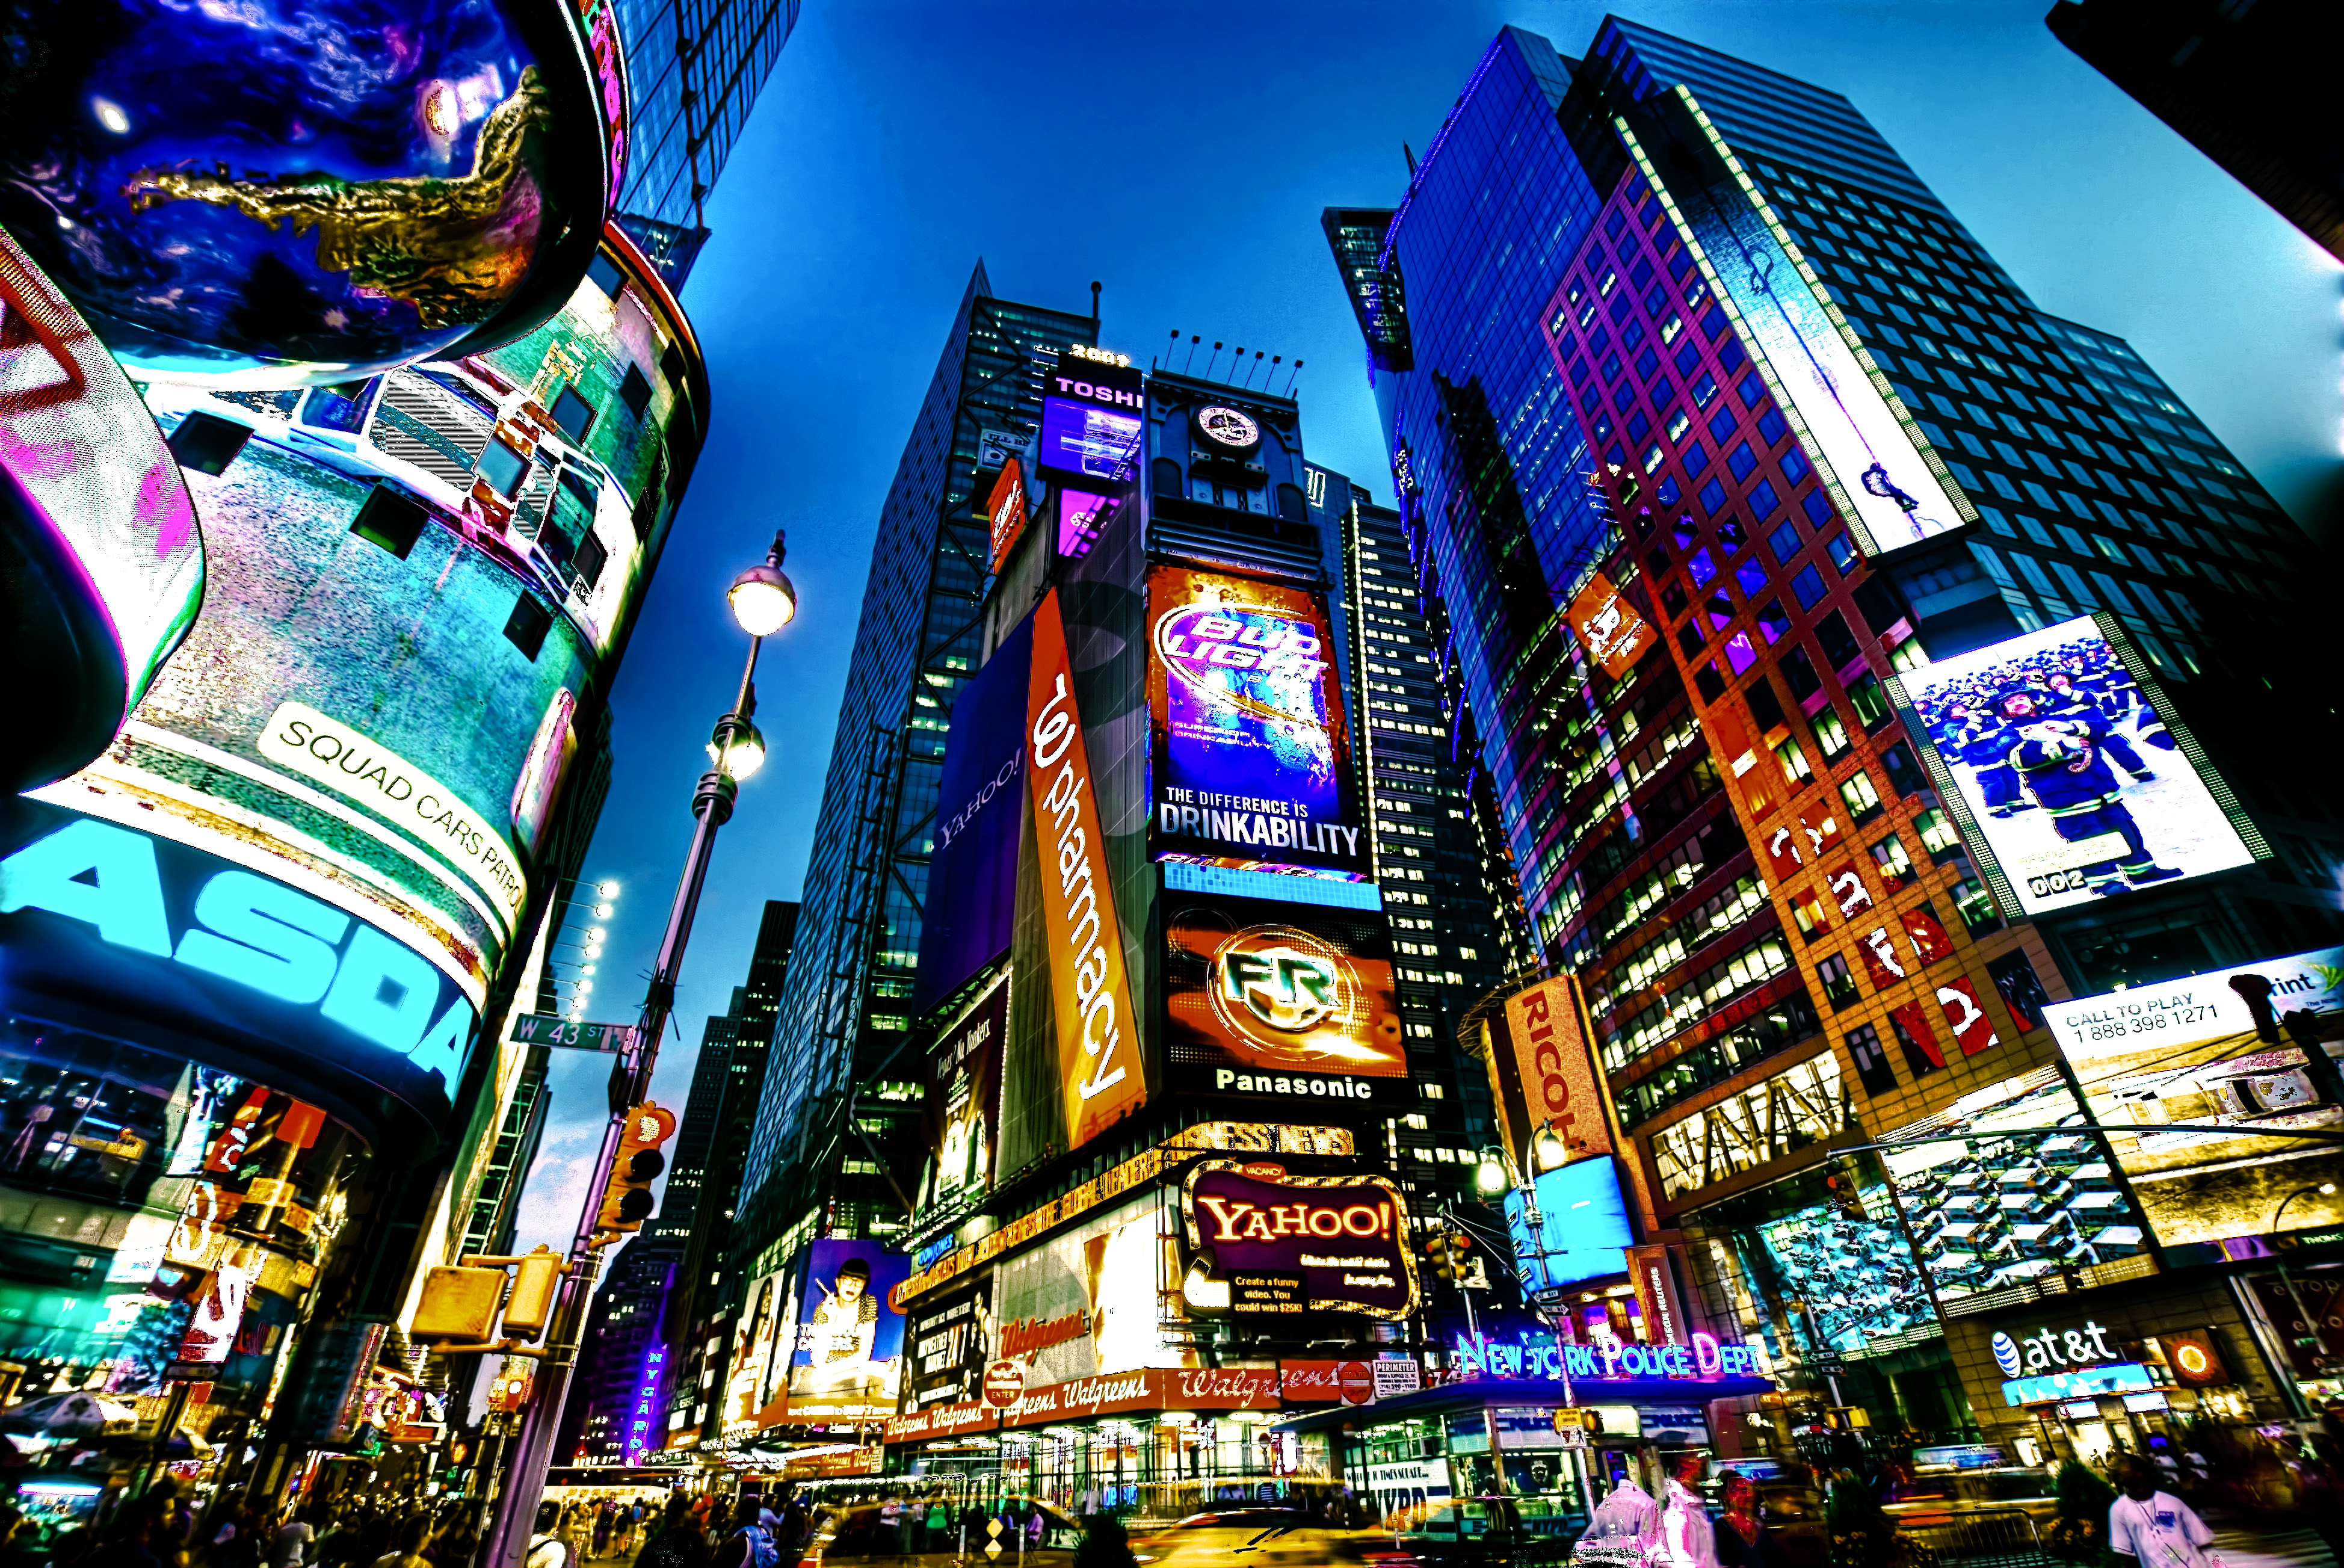 Times_Square__New_York_City_(HDR).jpg